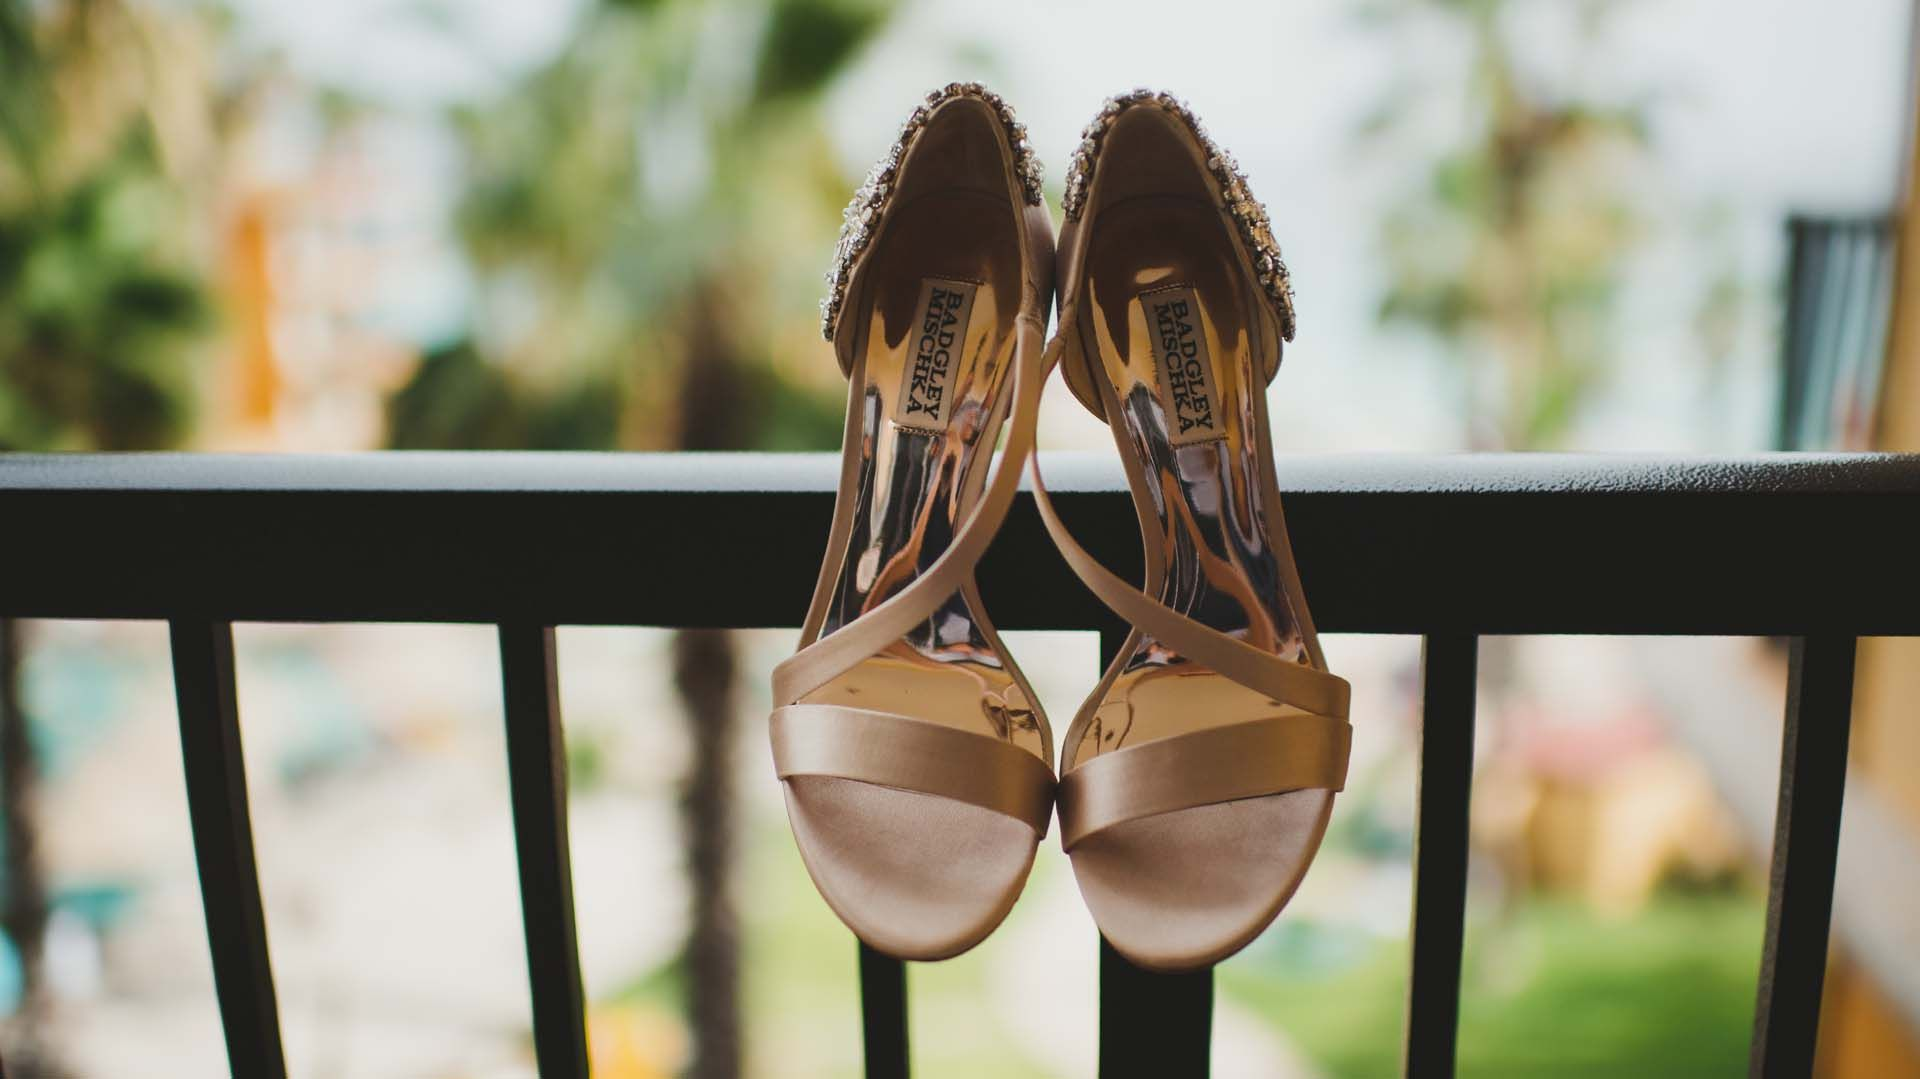 Beautiful shoes were worn by the Bride on her Wedding day. They had such beautiful coloring and went perfect with the color of her wedding dress and makeup. Her wedding took place at Villa del Palmar, in Los Cabos, Mexico.